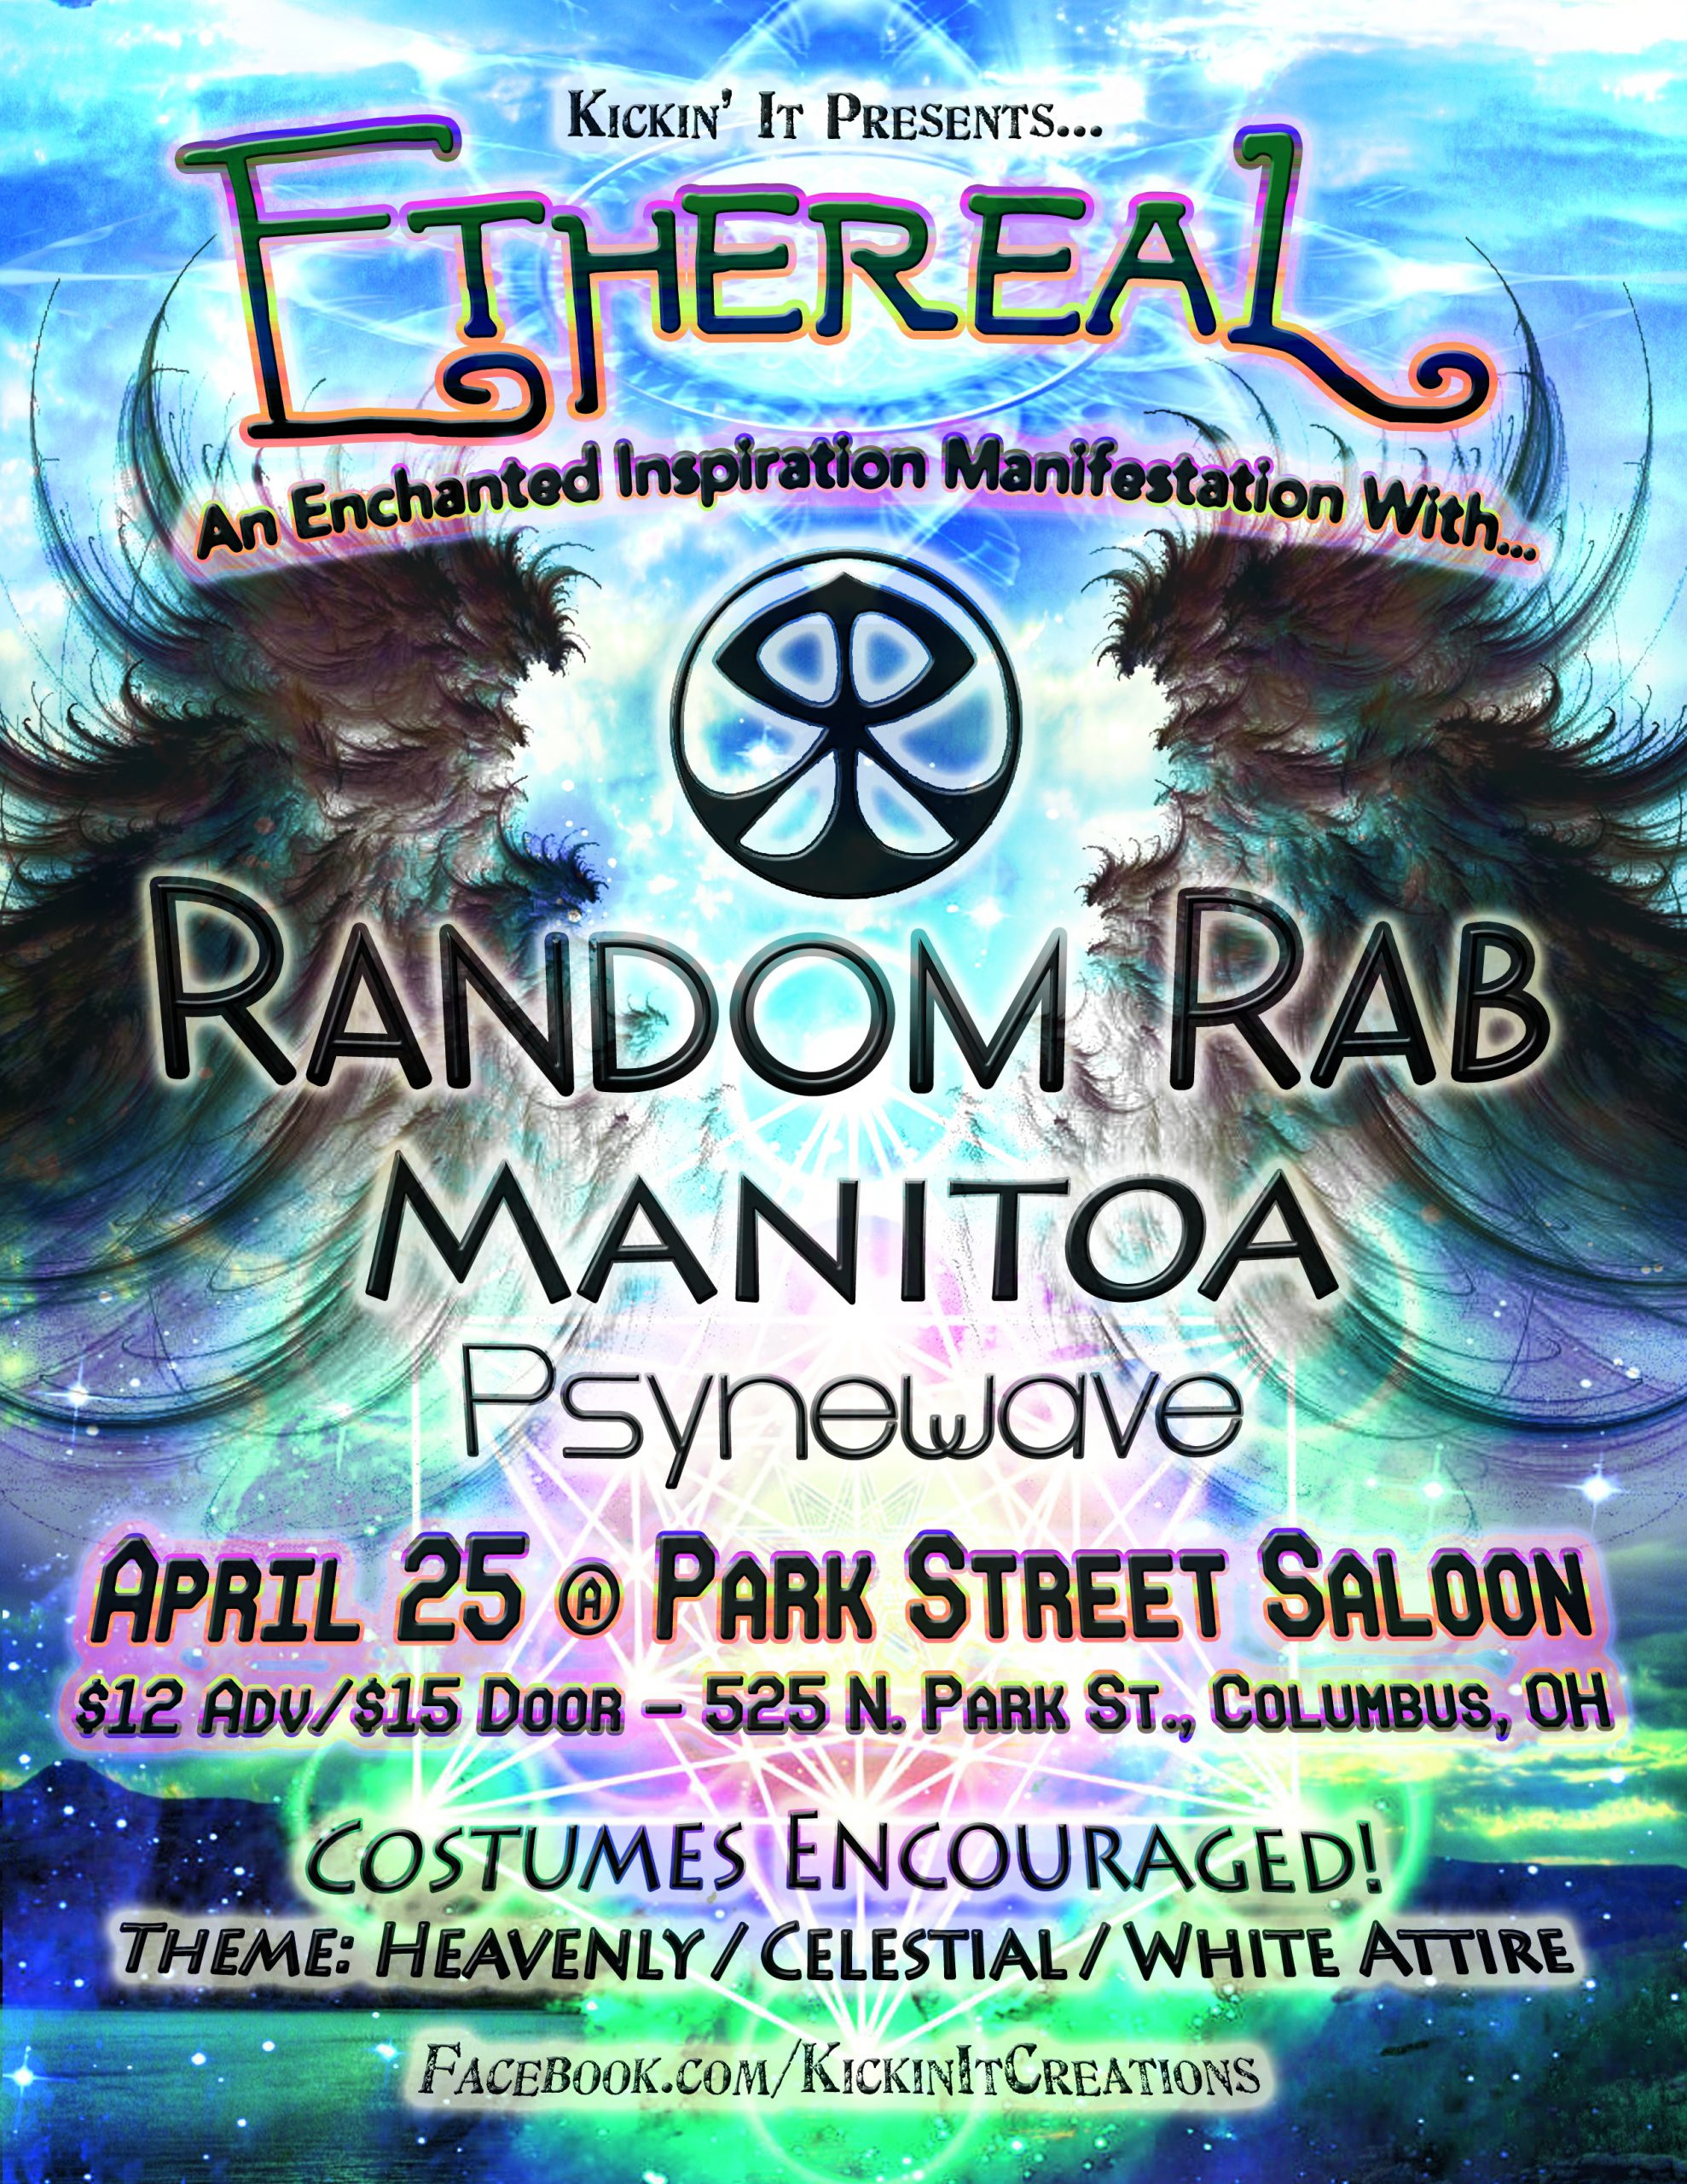 Kickin' It Crew to host event Ethereal feat. Random Rab & Manitoa April 25